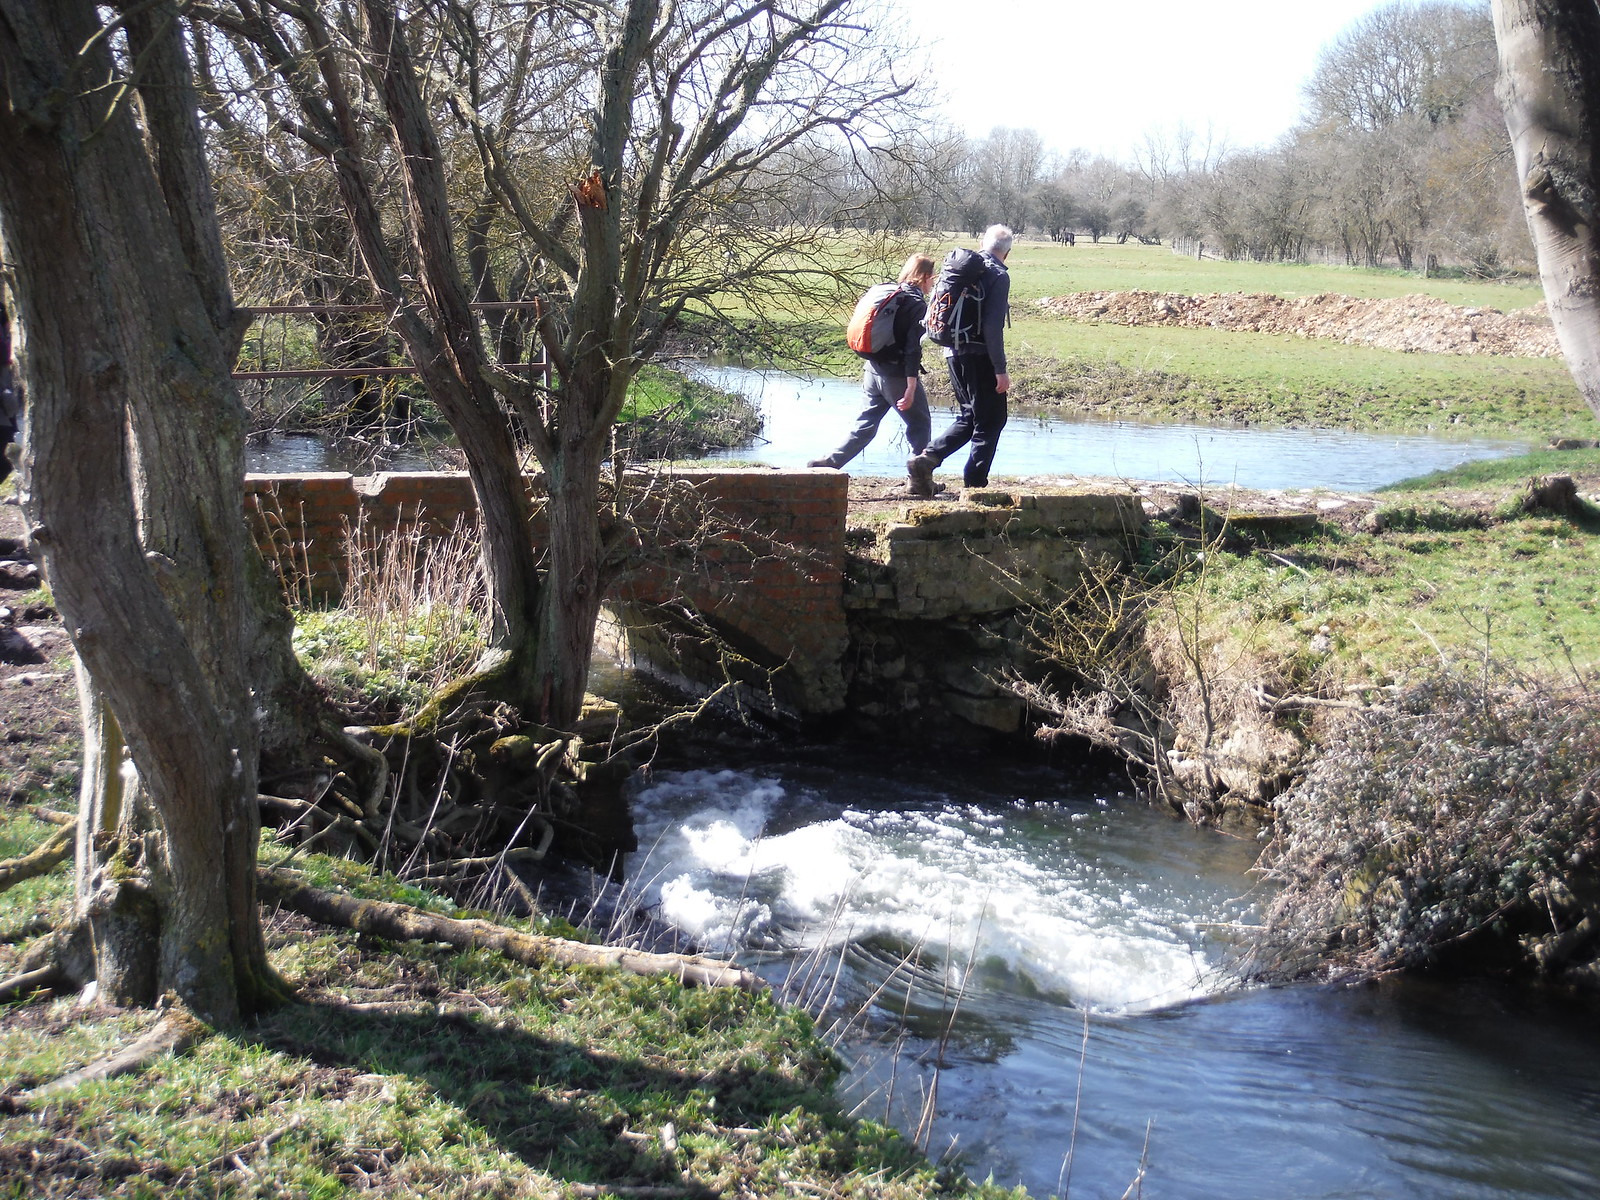 Crossing the River Thame (old mill site near Notley Abbey) SWC Walk 193 Haddenham to Aylesbury (via Gibraltar and Ford)